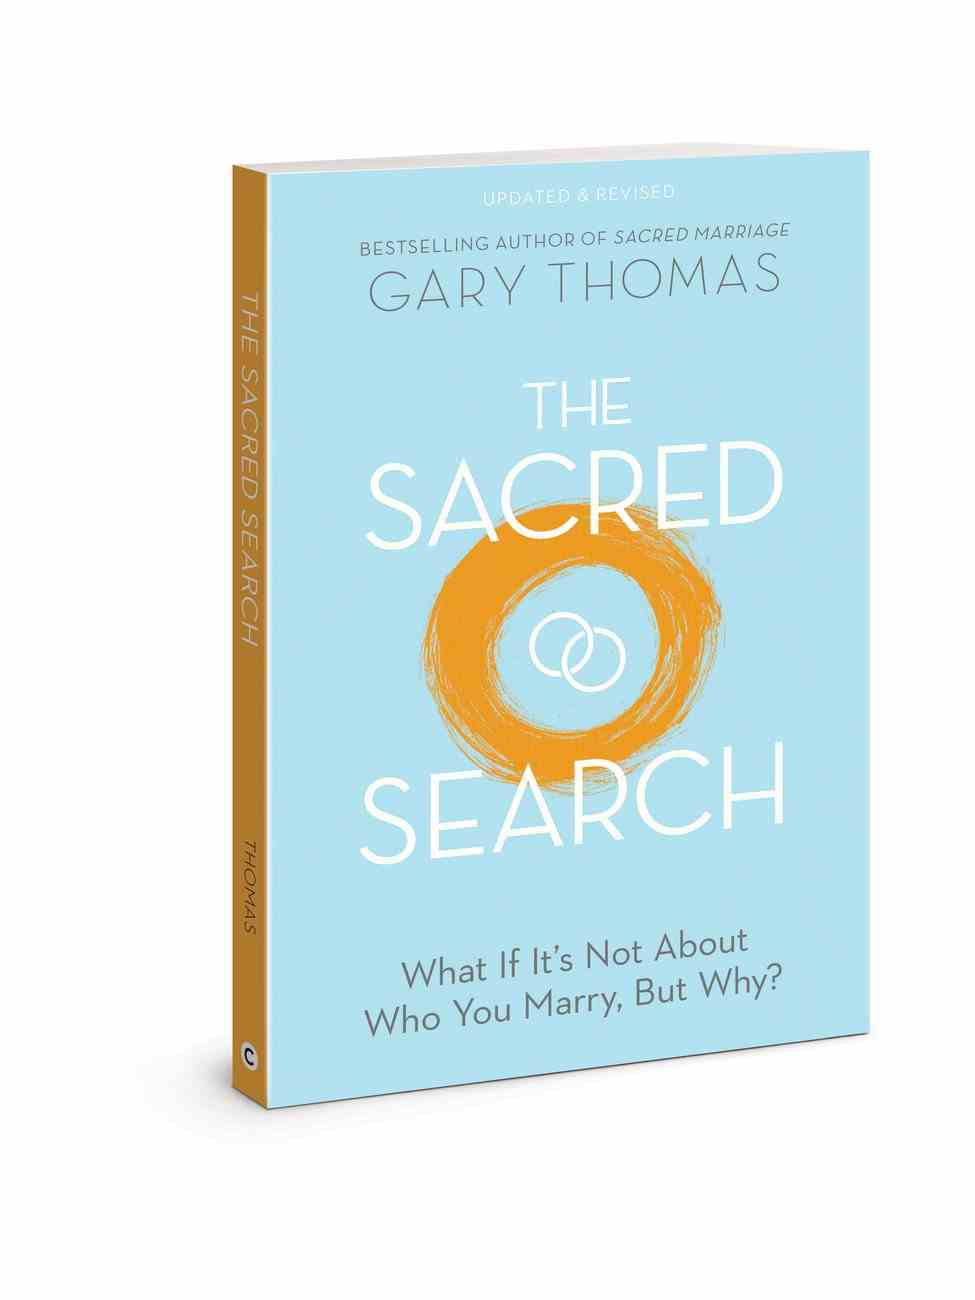 The Sacred Search: What If It's Not About Who You Marry, But Why? Paperback